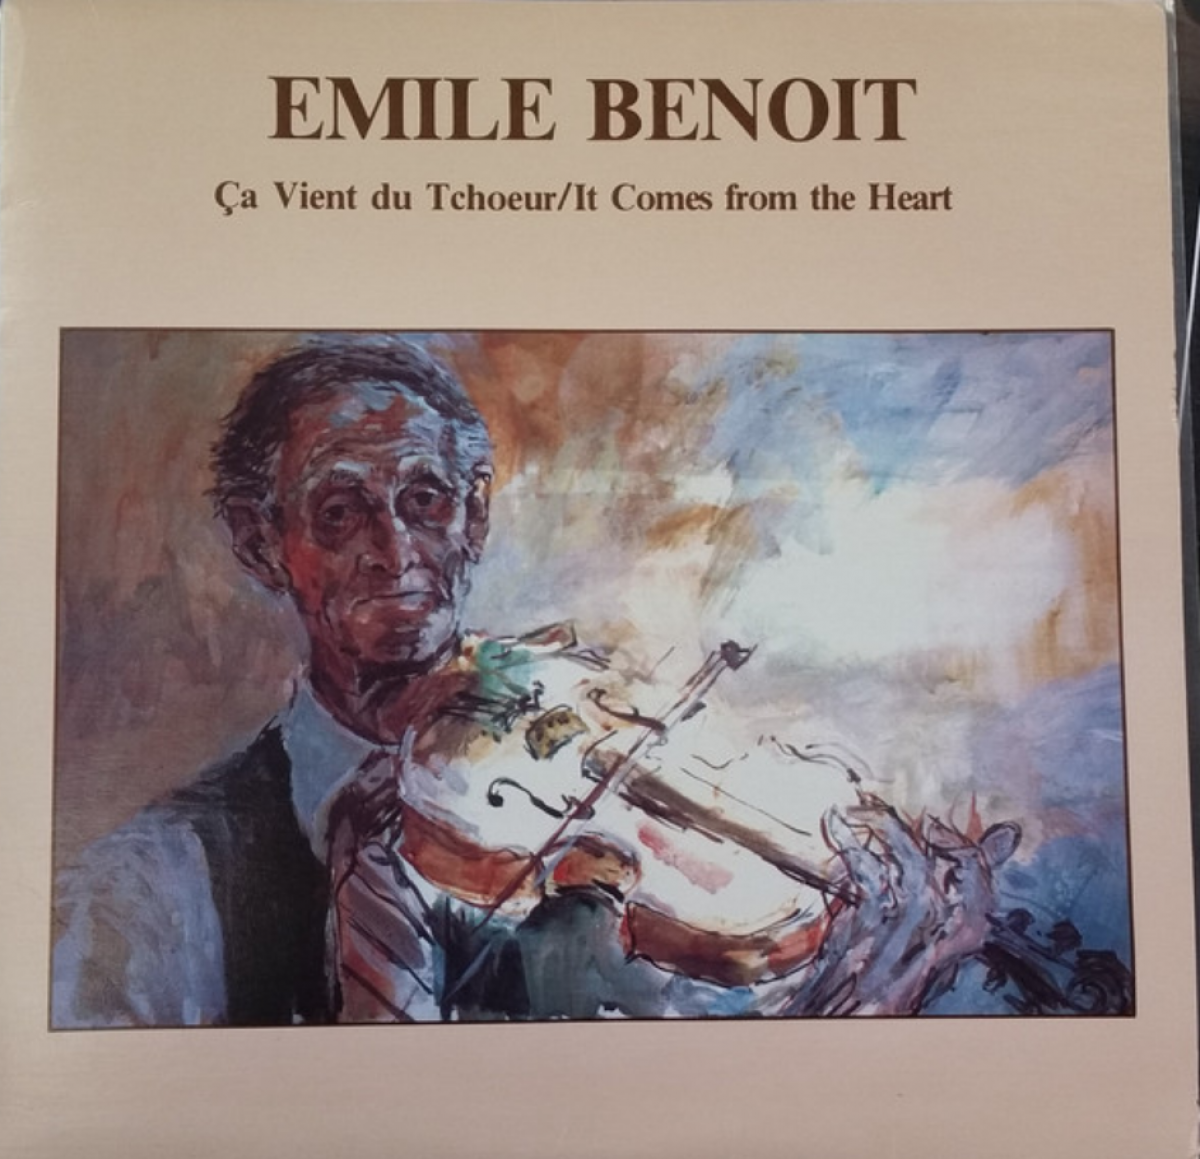 Émile Benoît - Ça vient du tchoeur / It comes from the heart